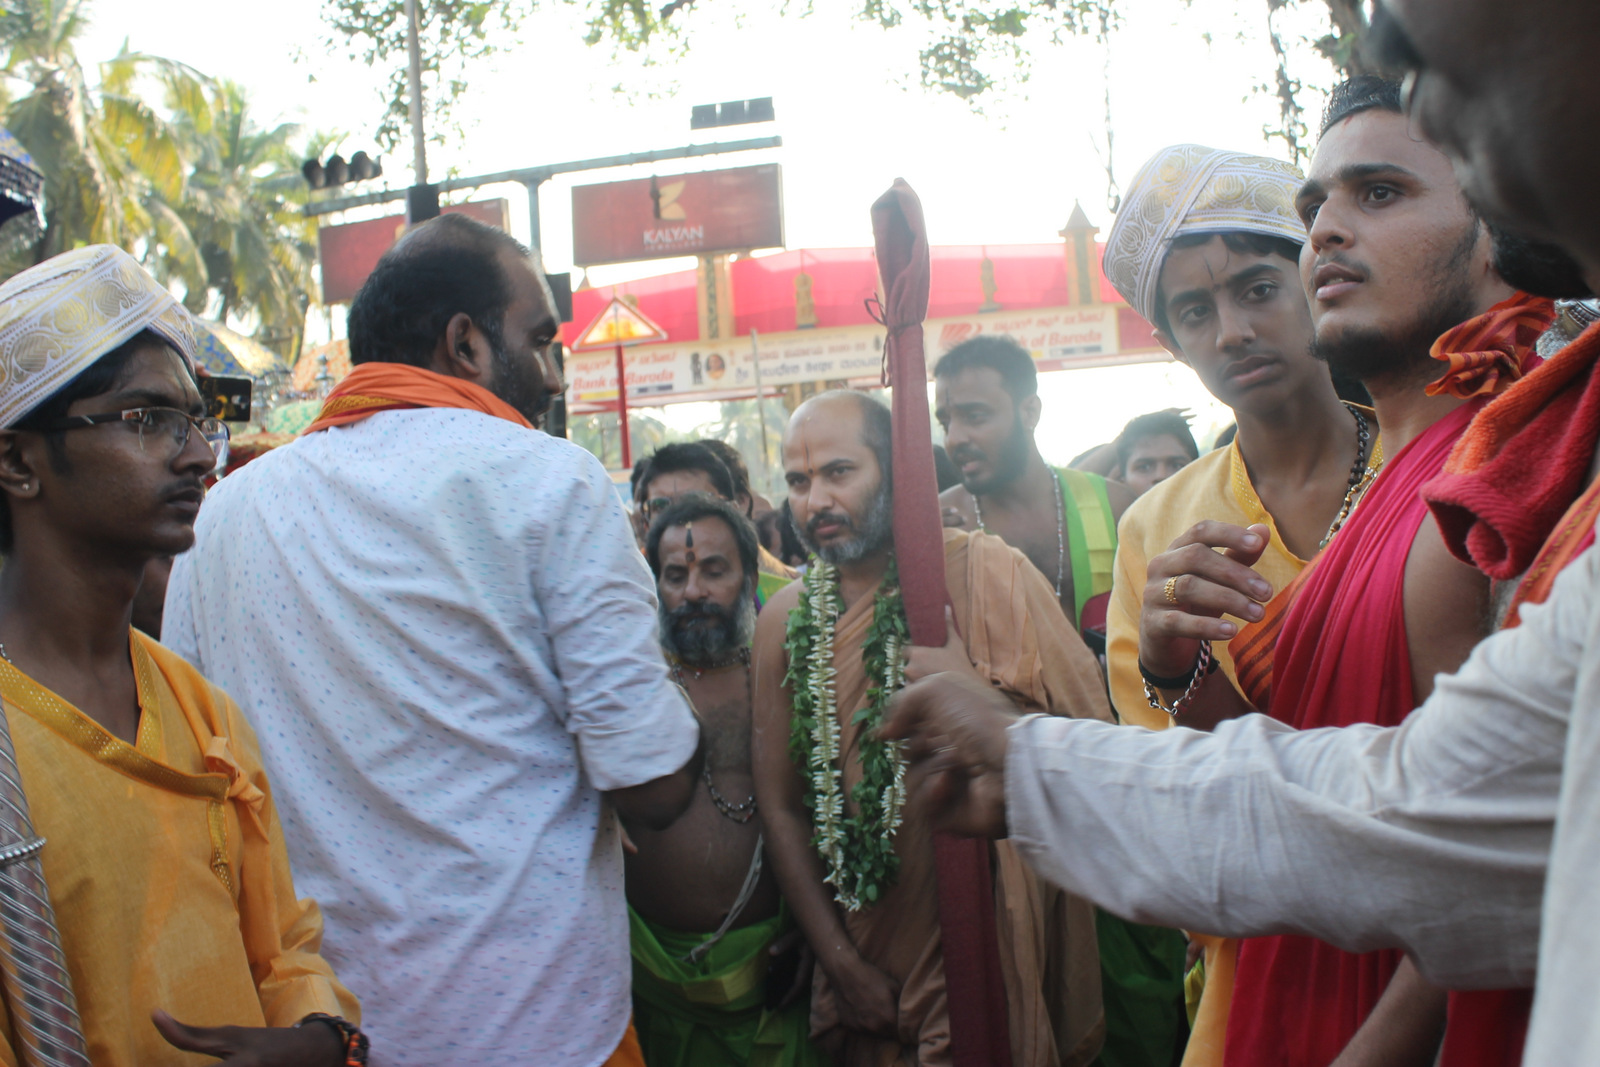 Rousing welcome to Shri Ishapriya Theertha Swamiji during his